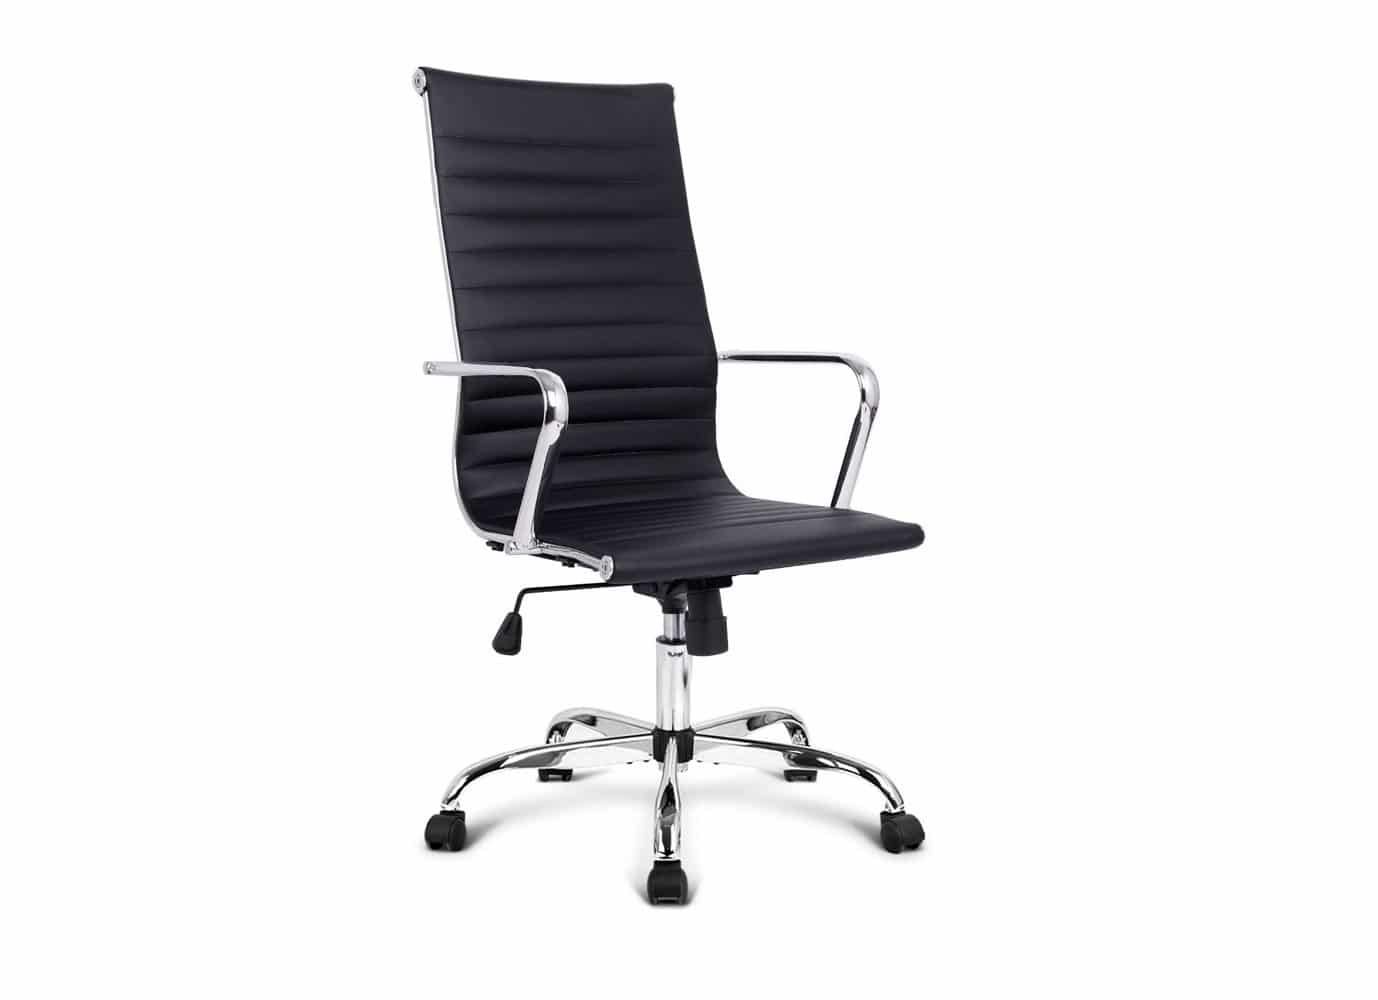 7 Tips On How To Pick The Right Office Chair